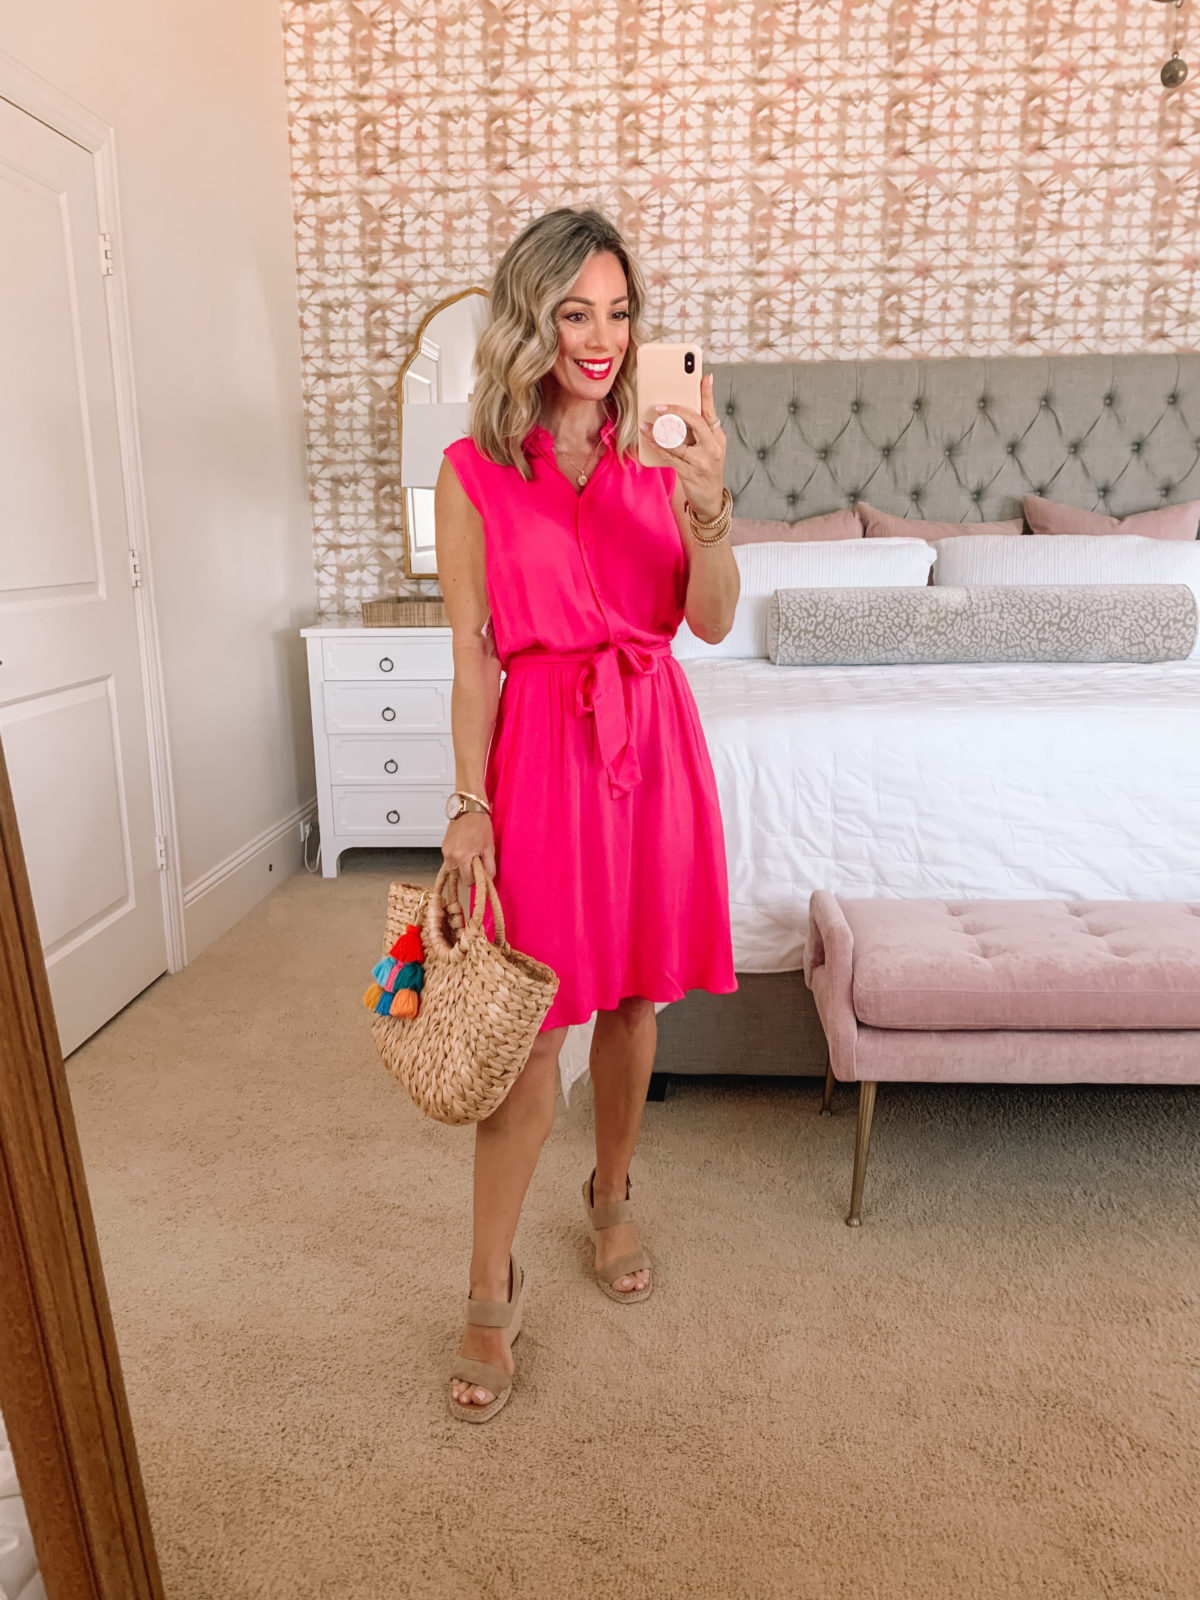 Amazon Fashion Faves, Sleeveless Pink Dress, Wedges and Woven Tote with Tassel